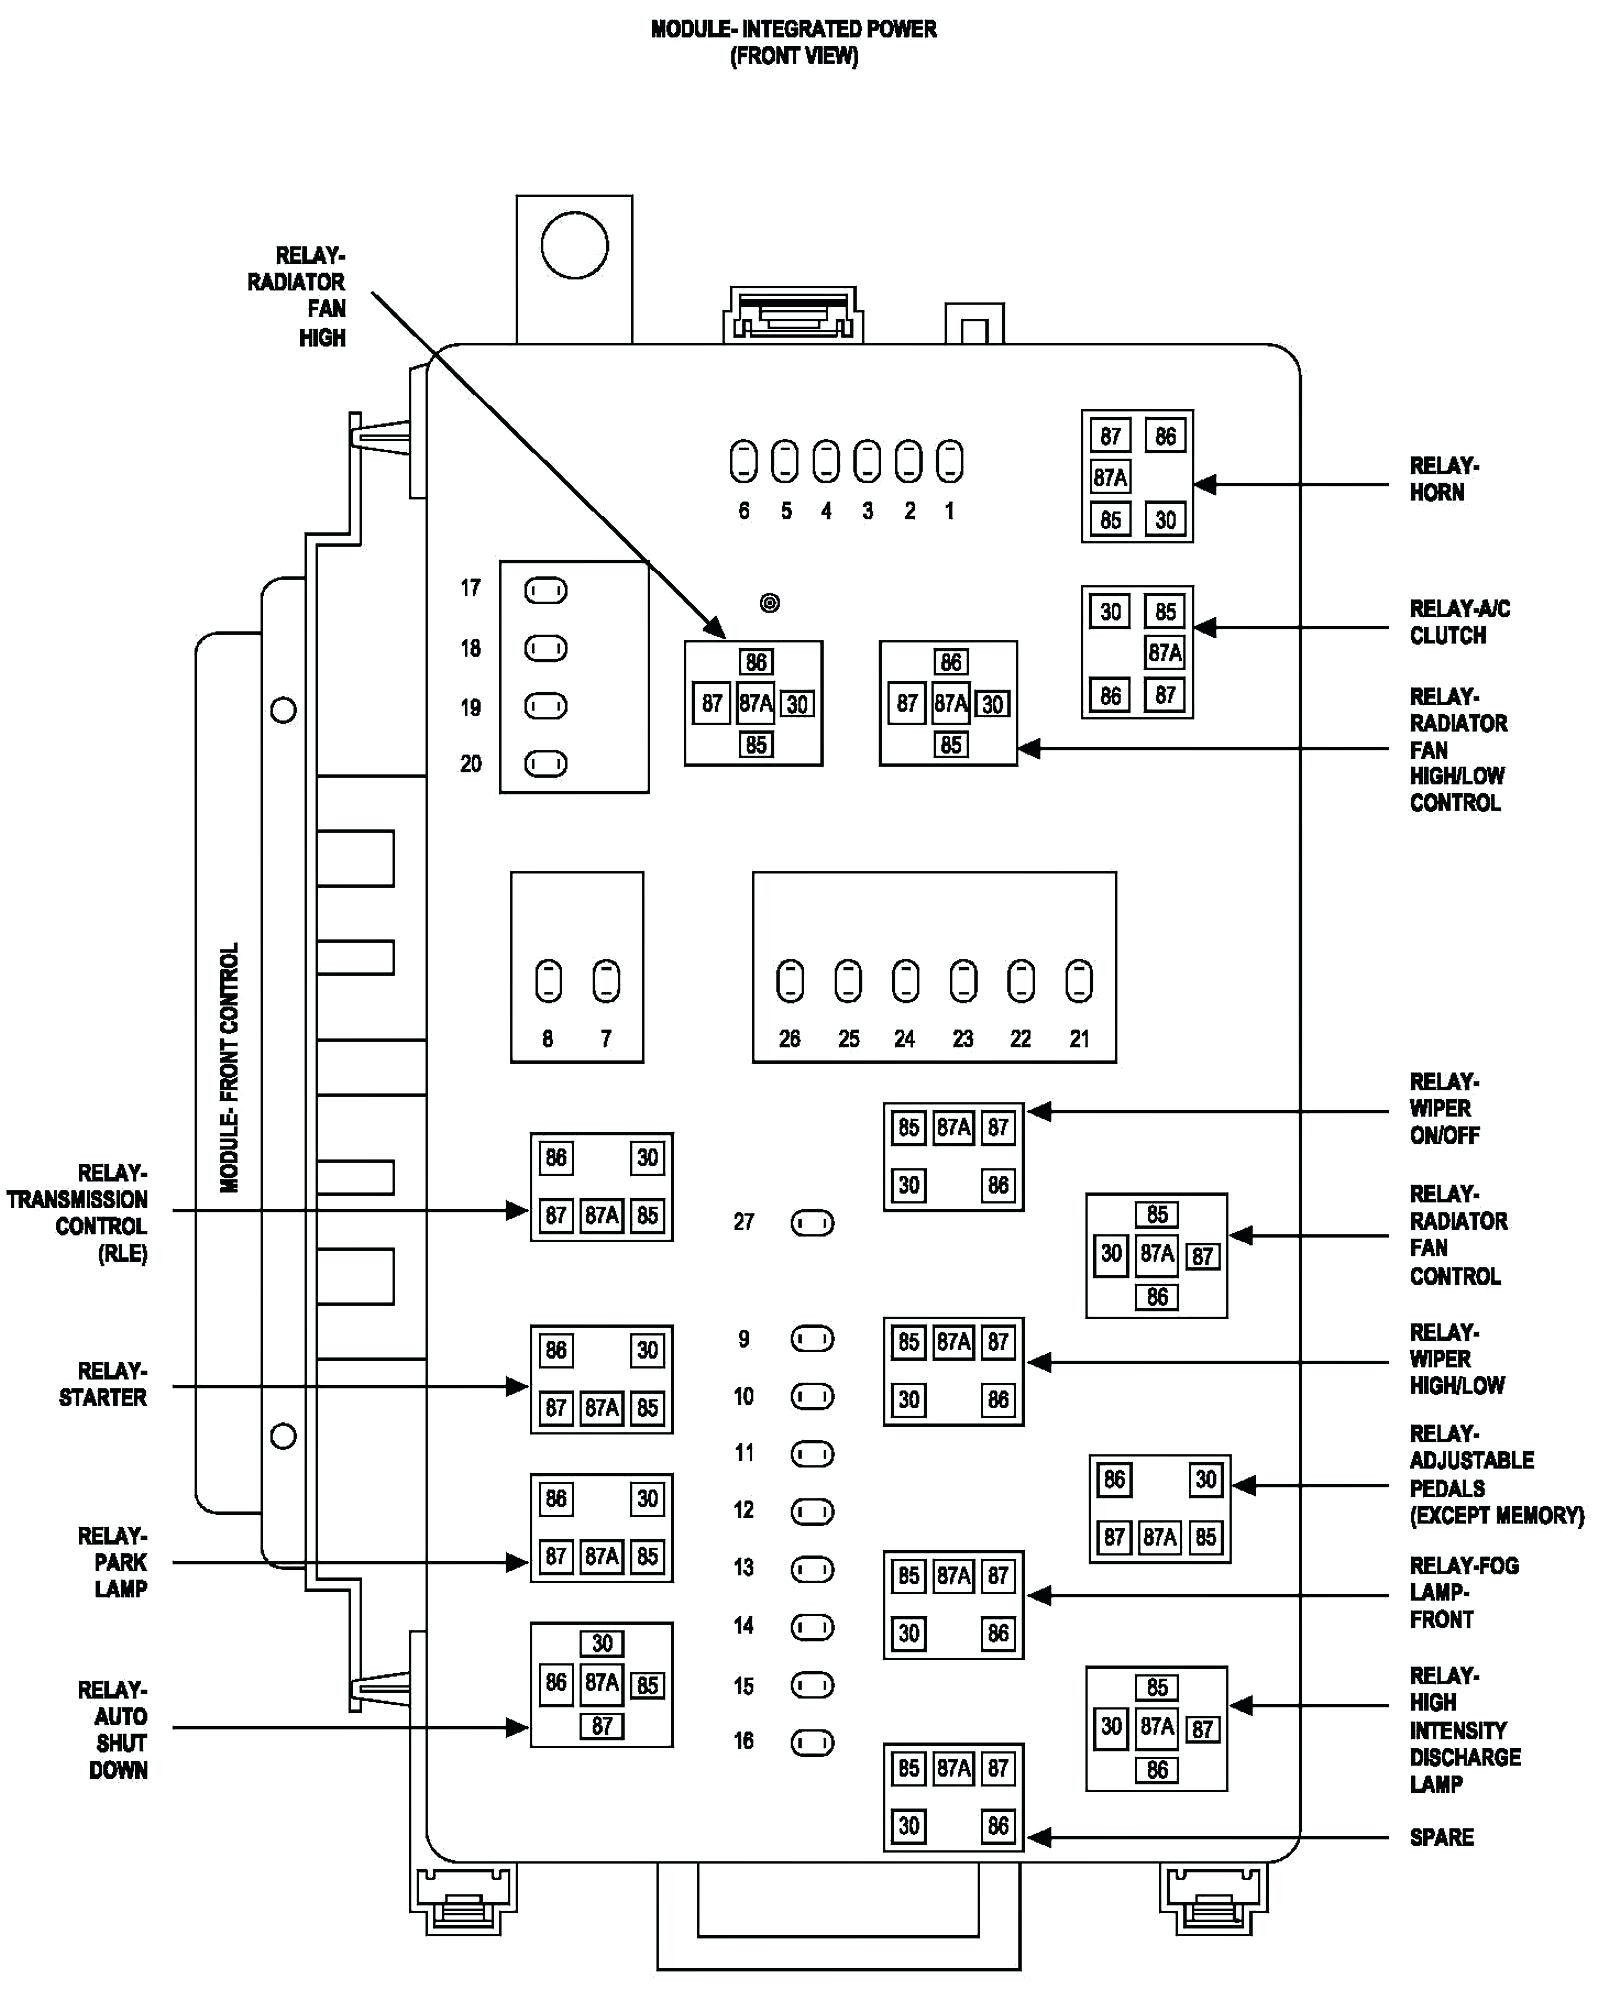 diagram 1999 chrysler 300m fuse box diagram full version hd quality box diagram webguideuk scarpeskecherssport it diagram 1999 chrysler 300m fuse box